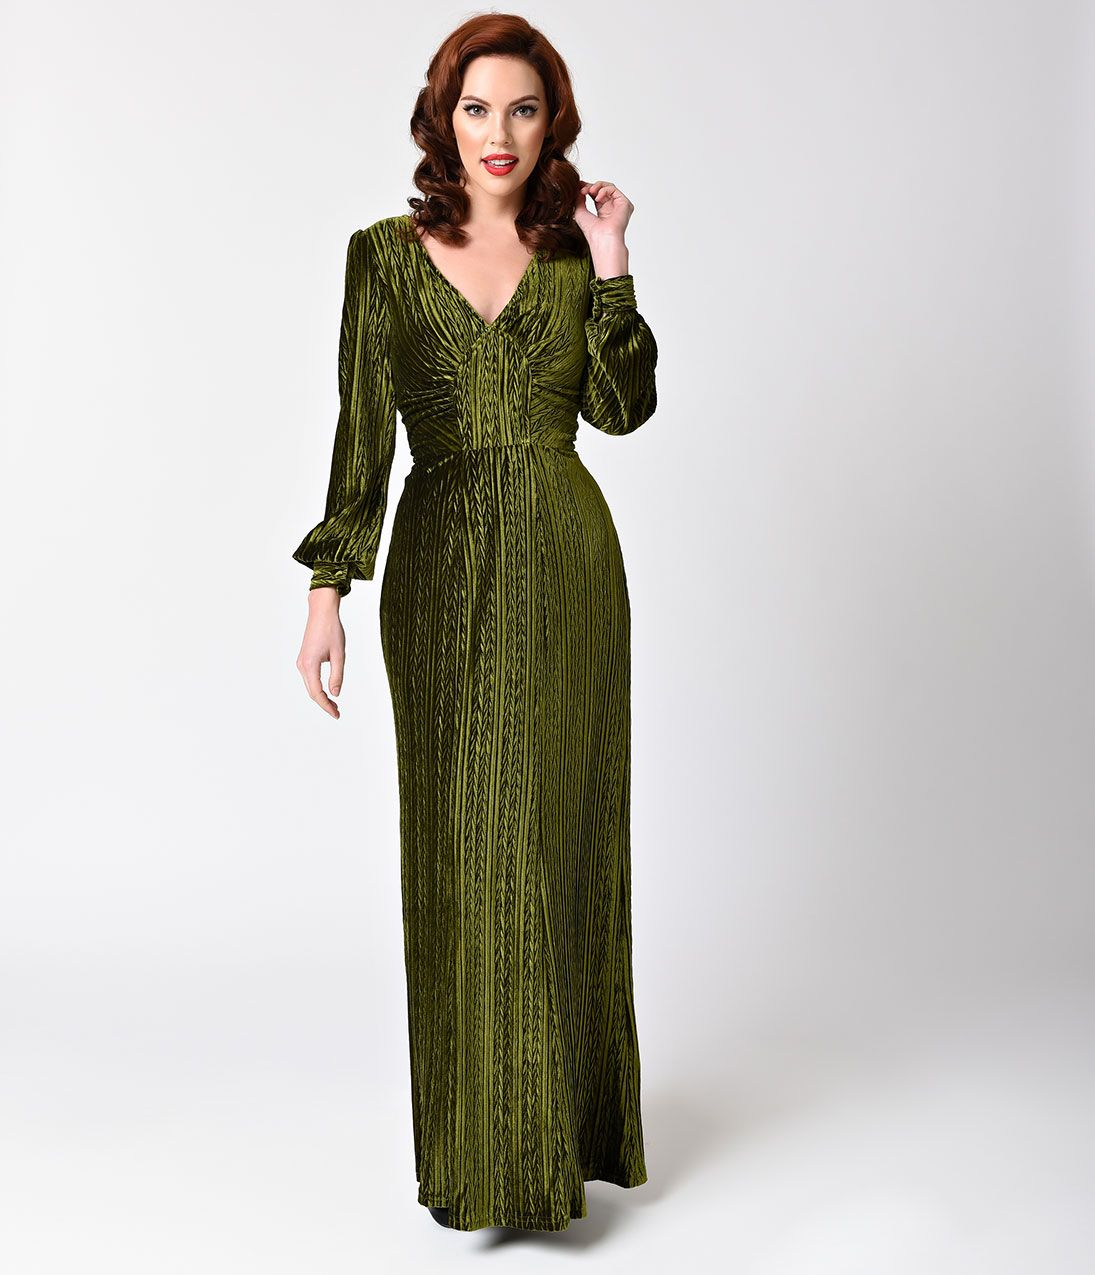 Unique Vintage Maxi Dress With Sleeves Long Sleeve Maxi Dress Maxi Dress [ 1275 x 1095 Pixel ]